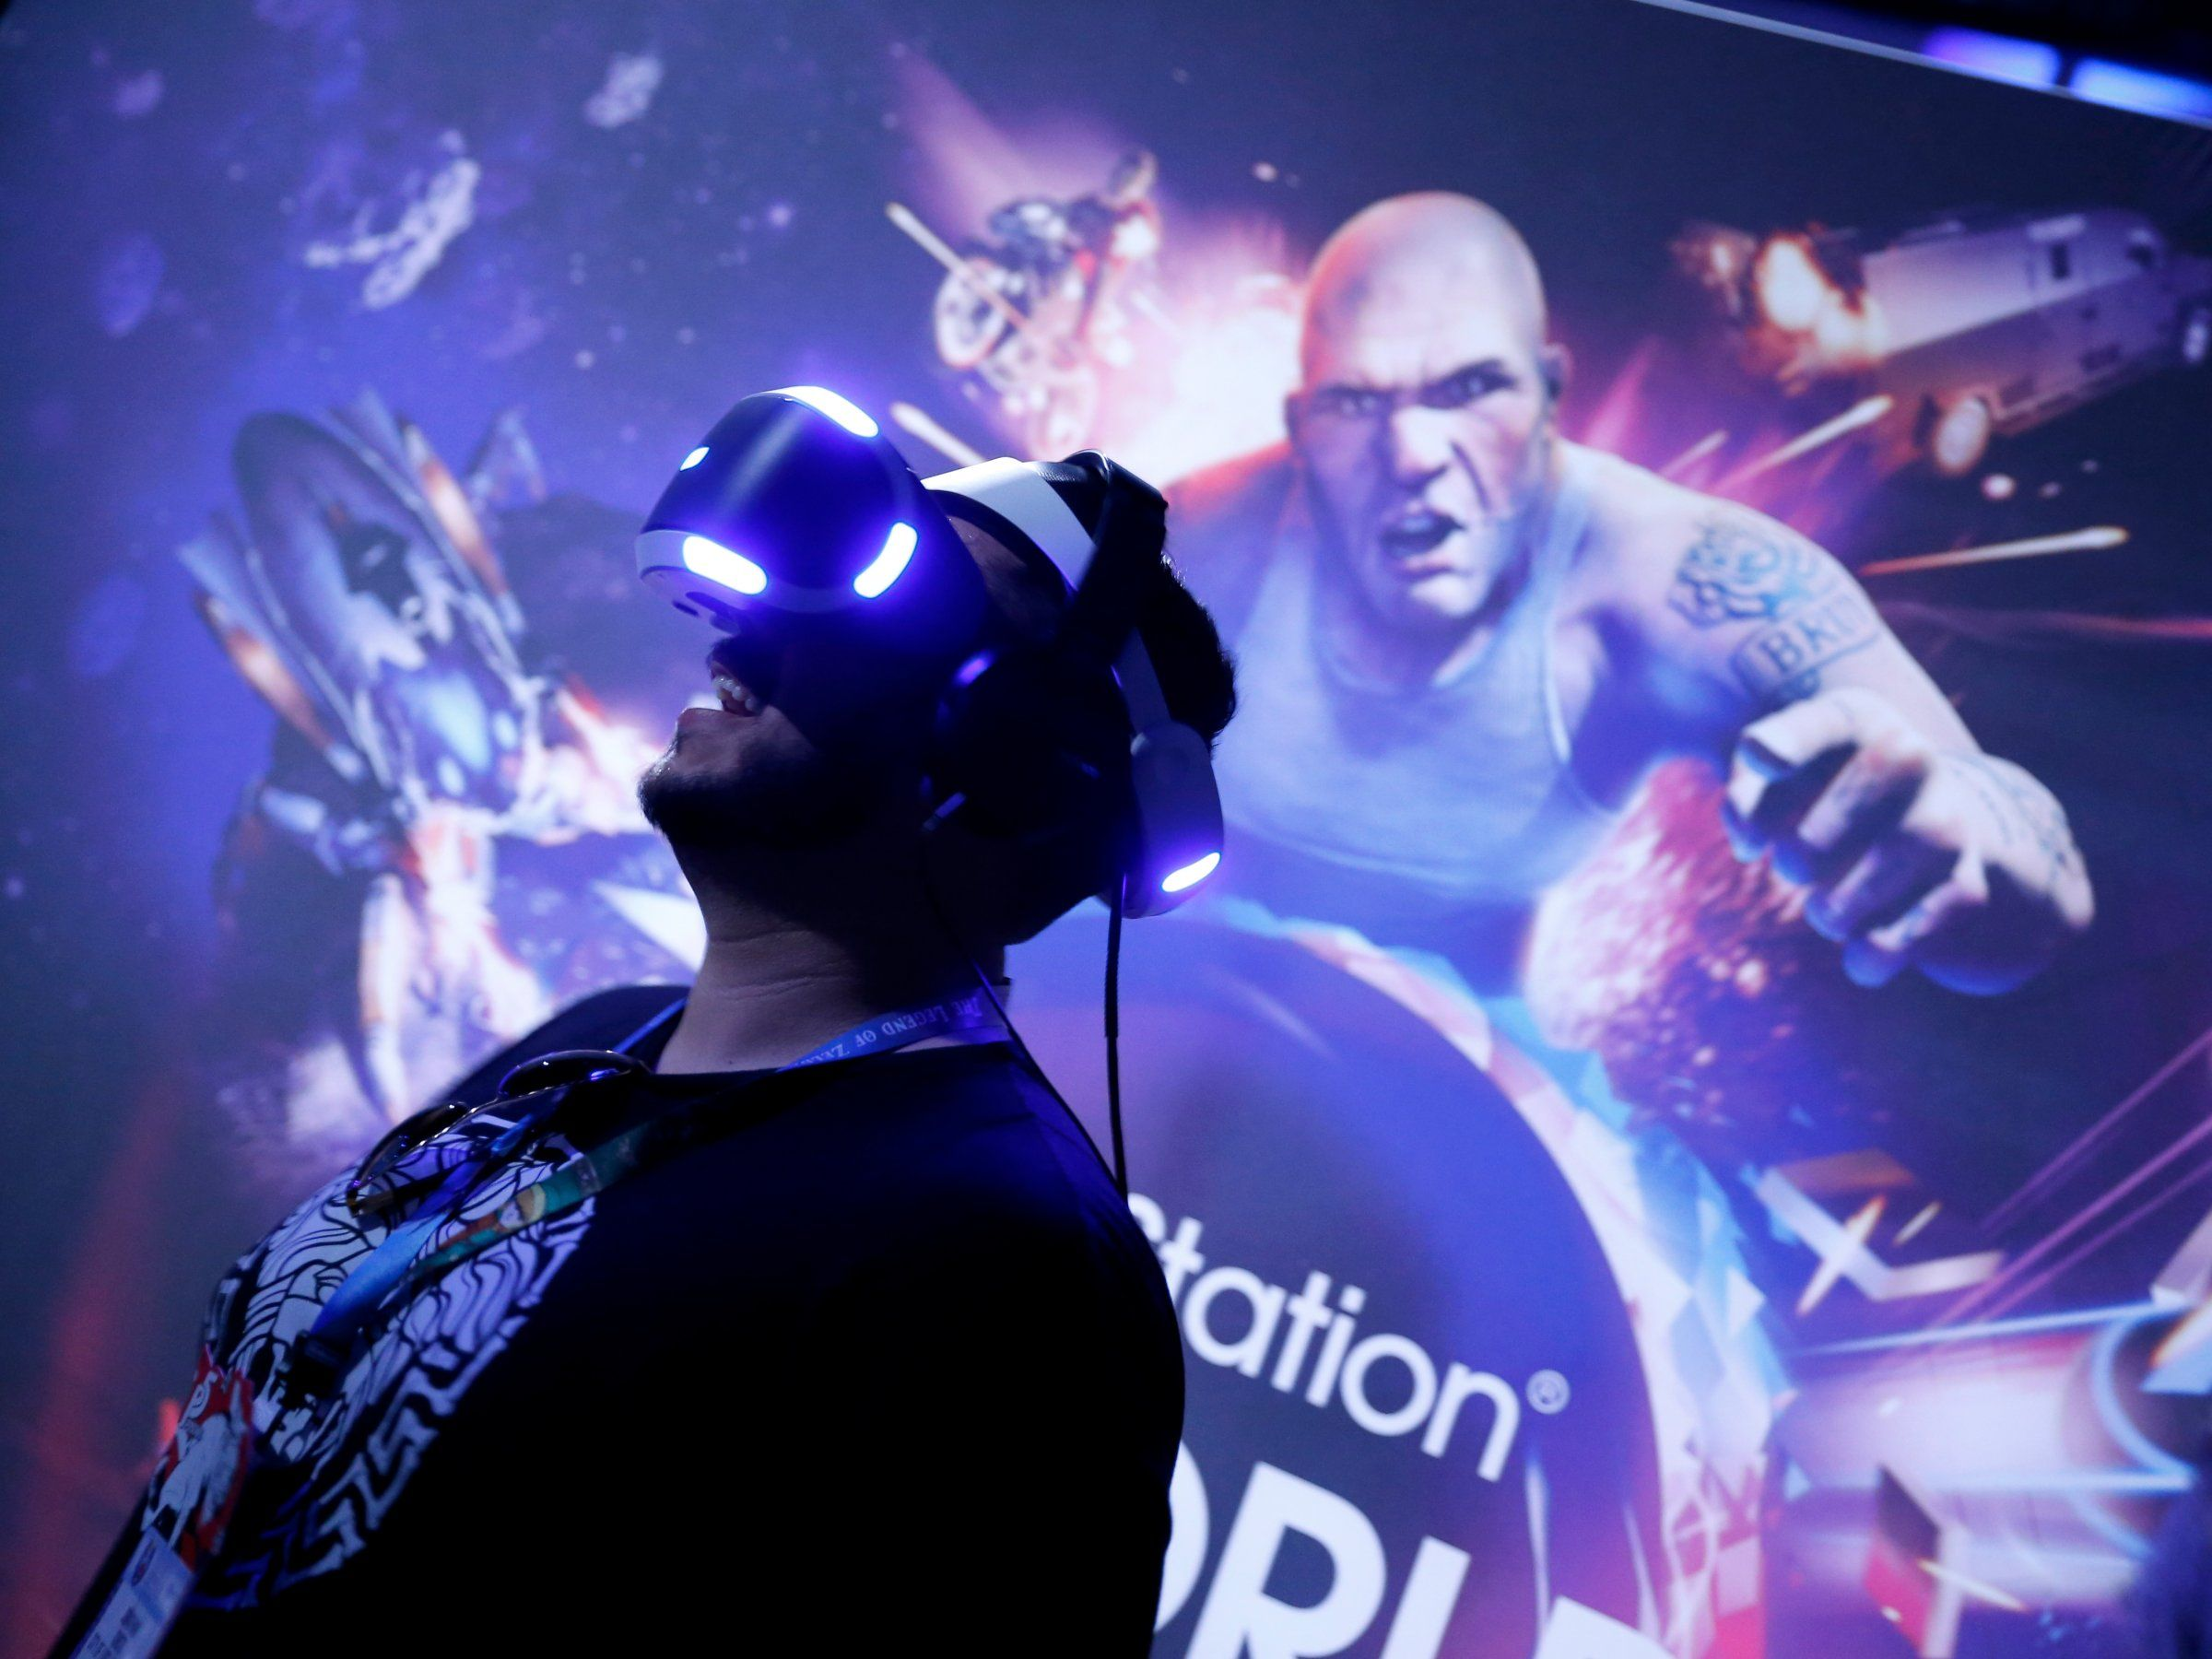 Sony says PlayStation VR is like watching movies on a 226-inch television screen